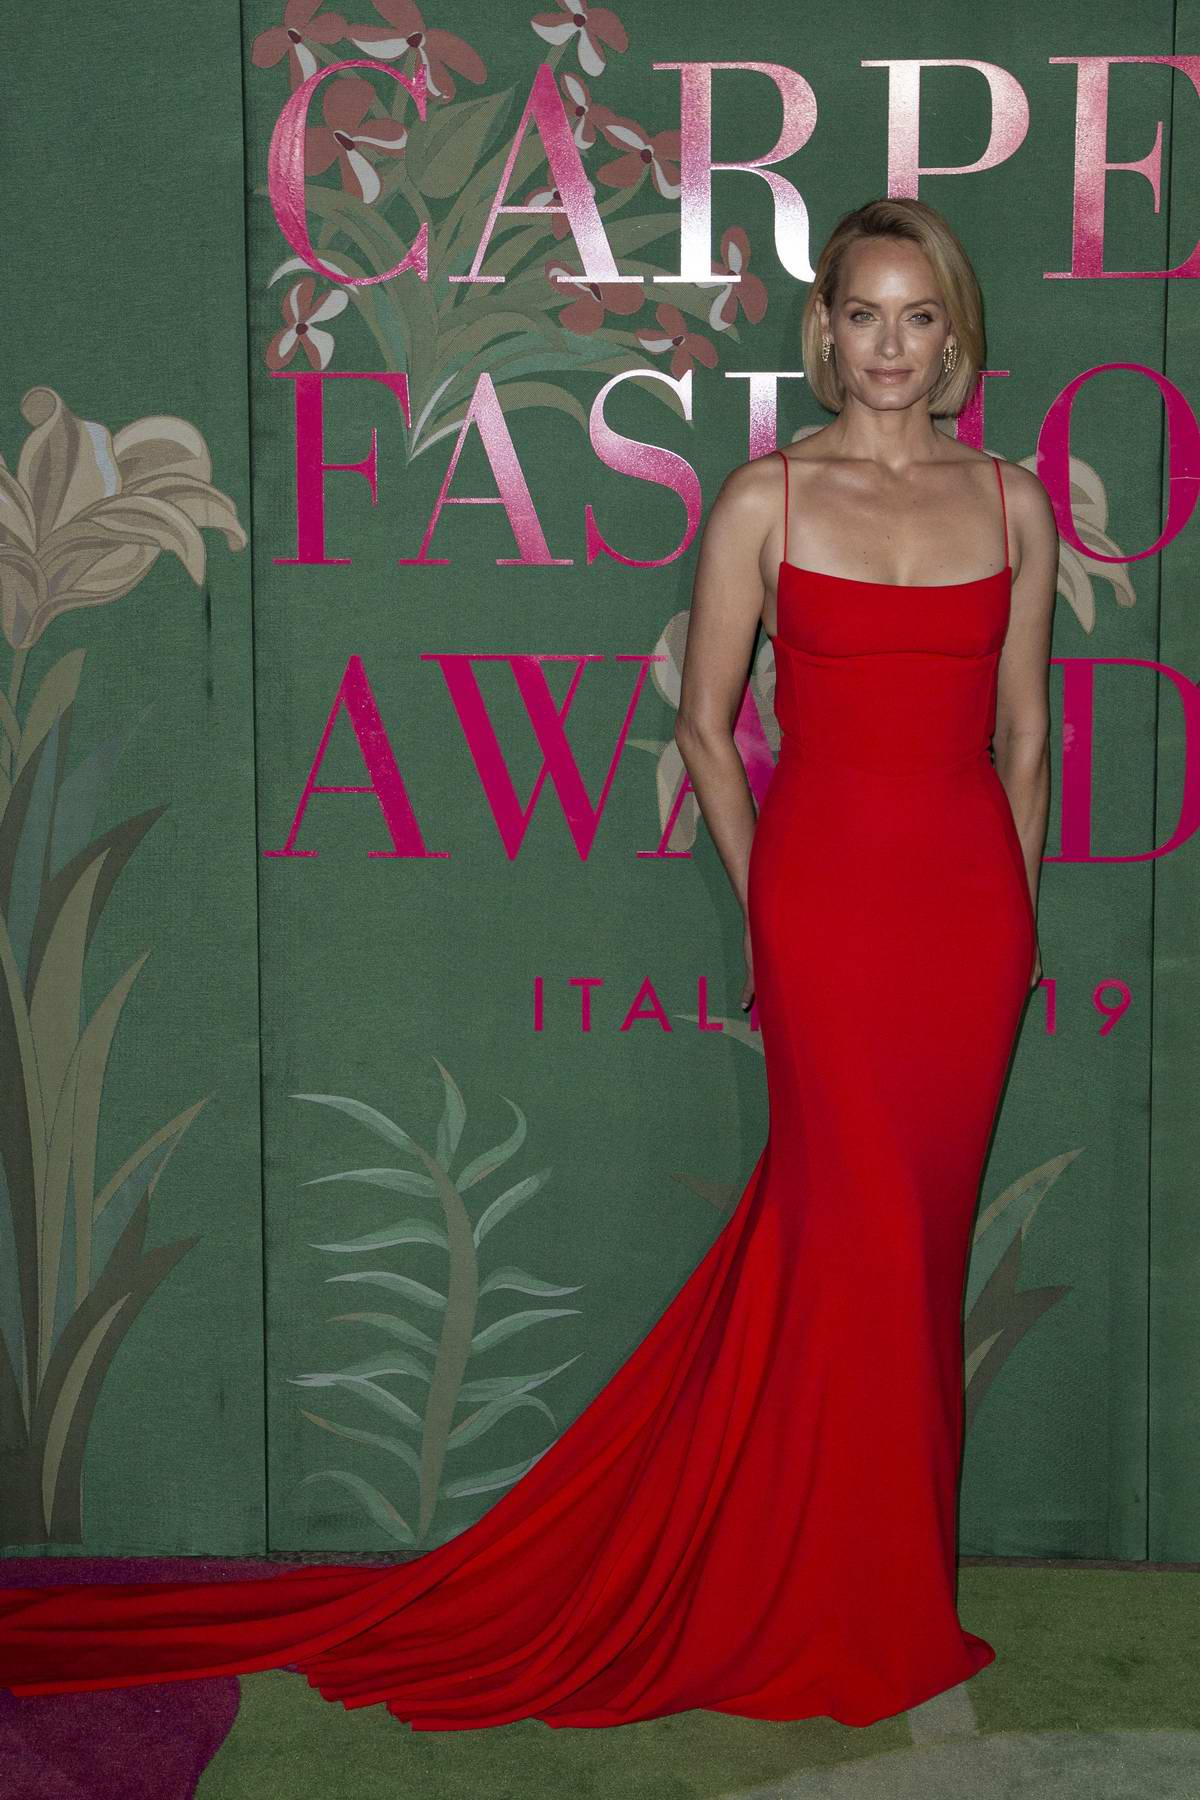 Amber Valletta attends The Green Carpet Fashion Awards 2019 in Milan, Italy